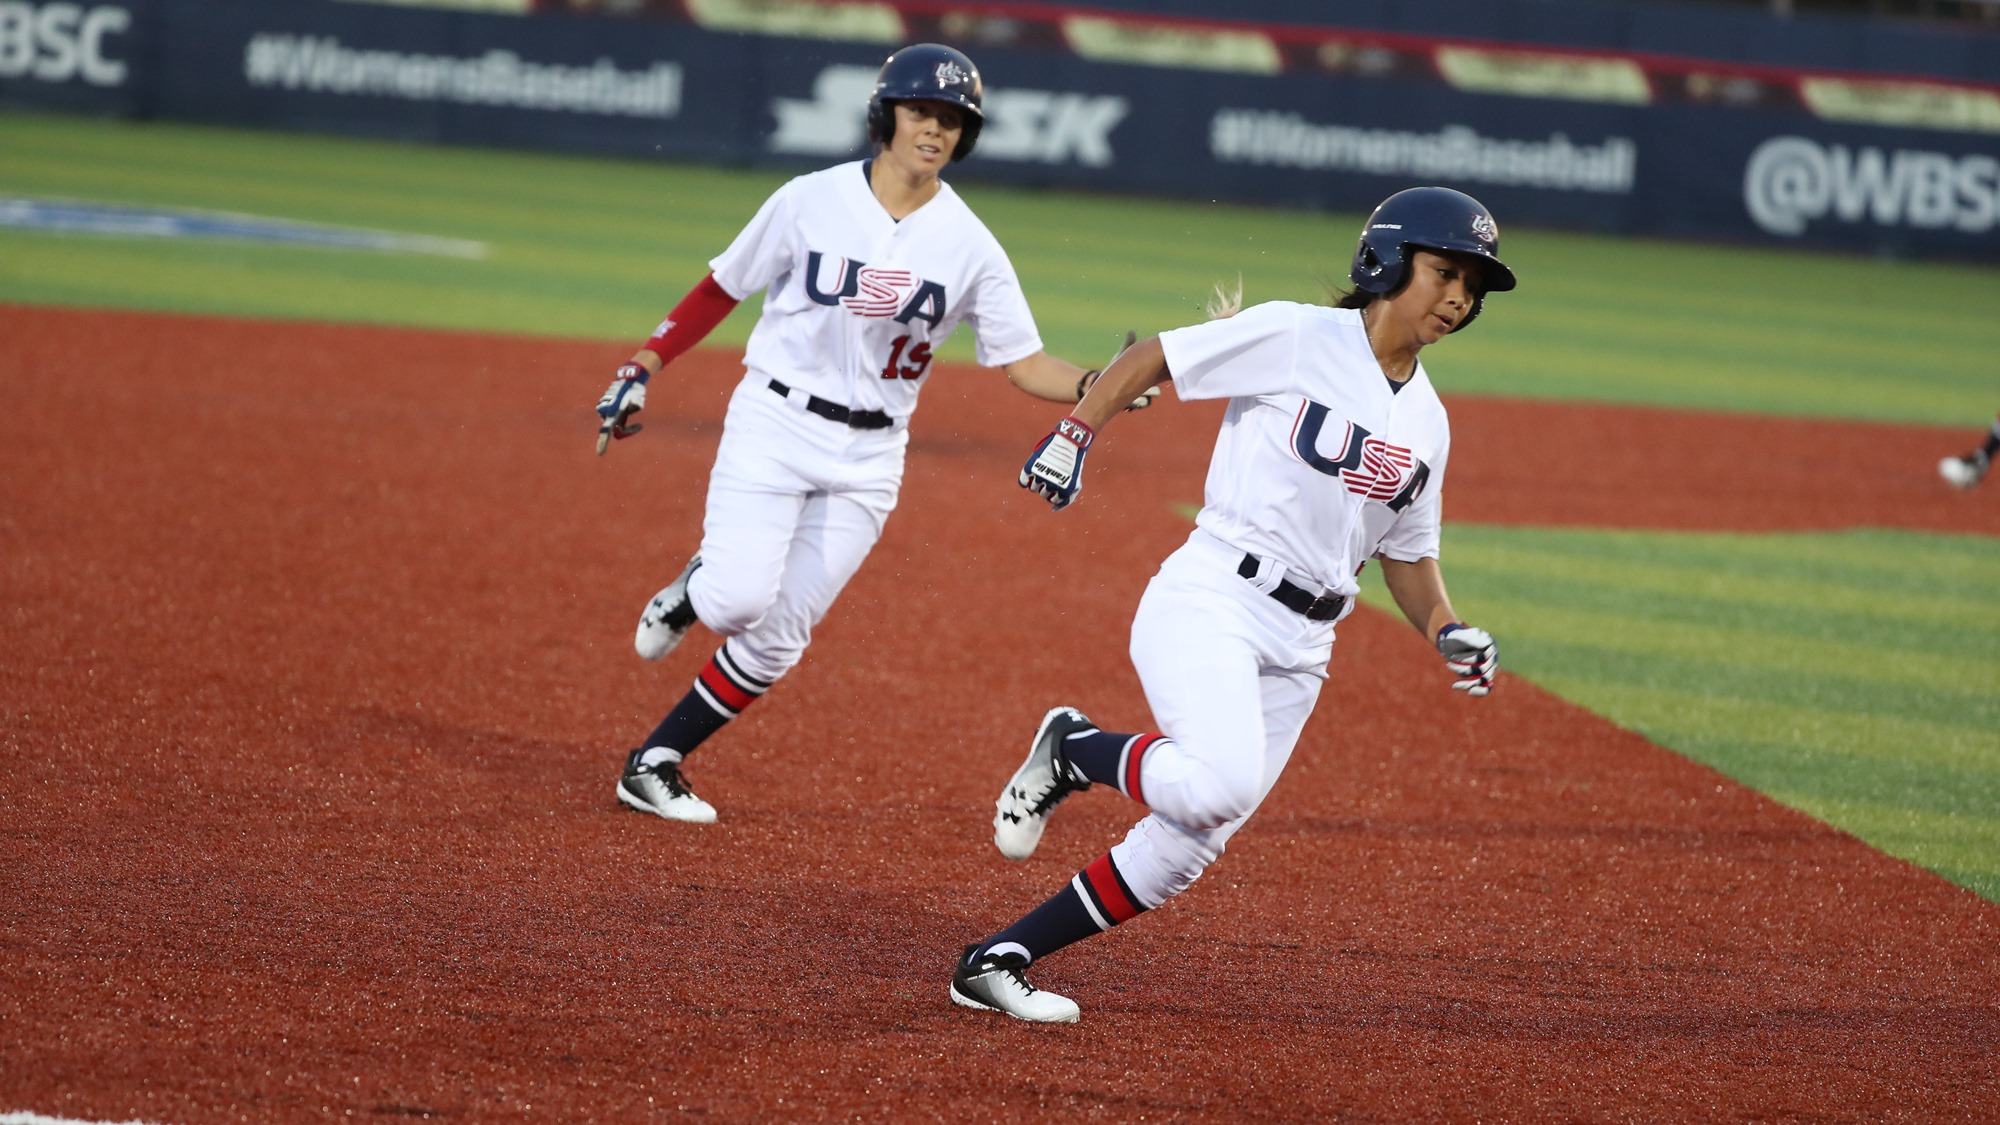 USA runners get busy on the bases